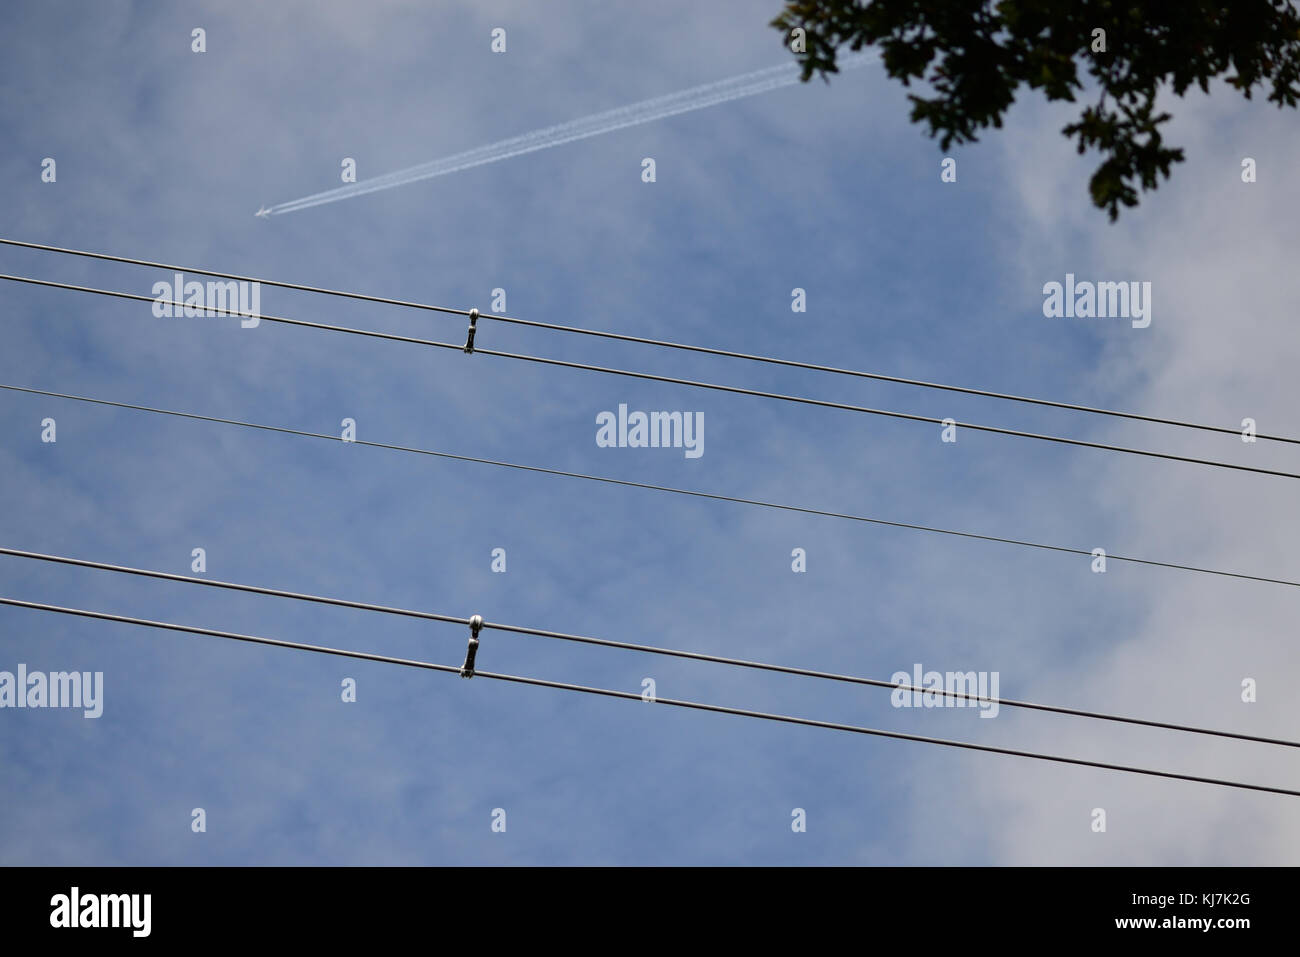 Overhead power cables. - Stock Image